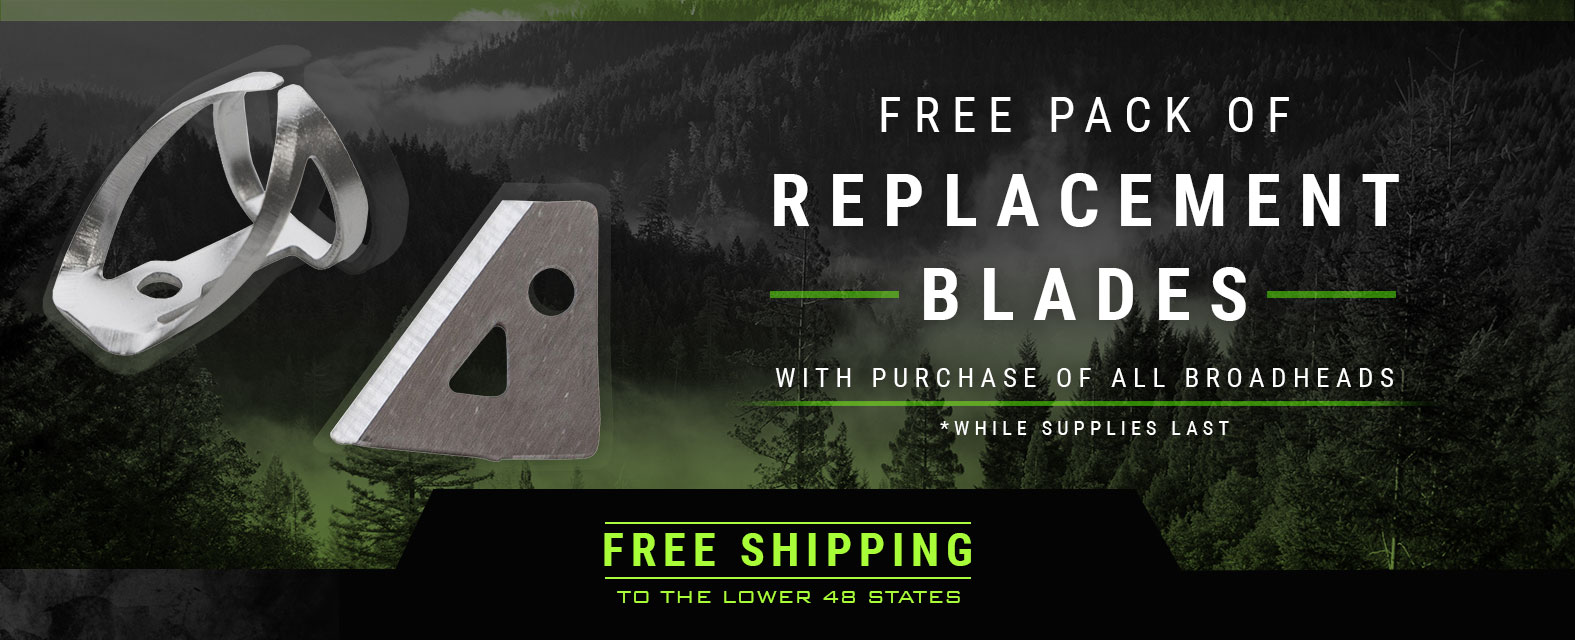 Free Pack of Replacement Blades